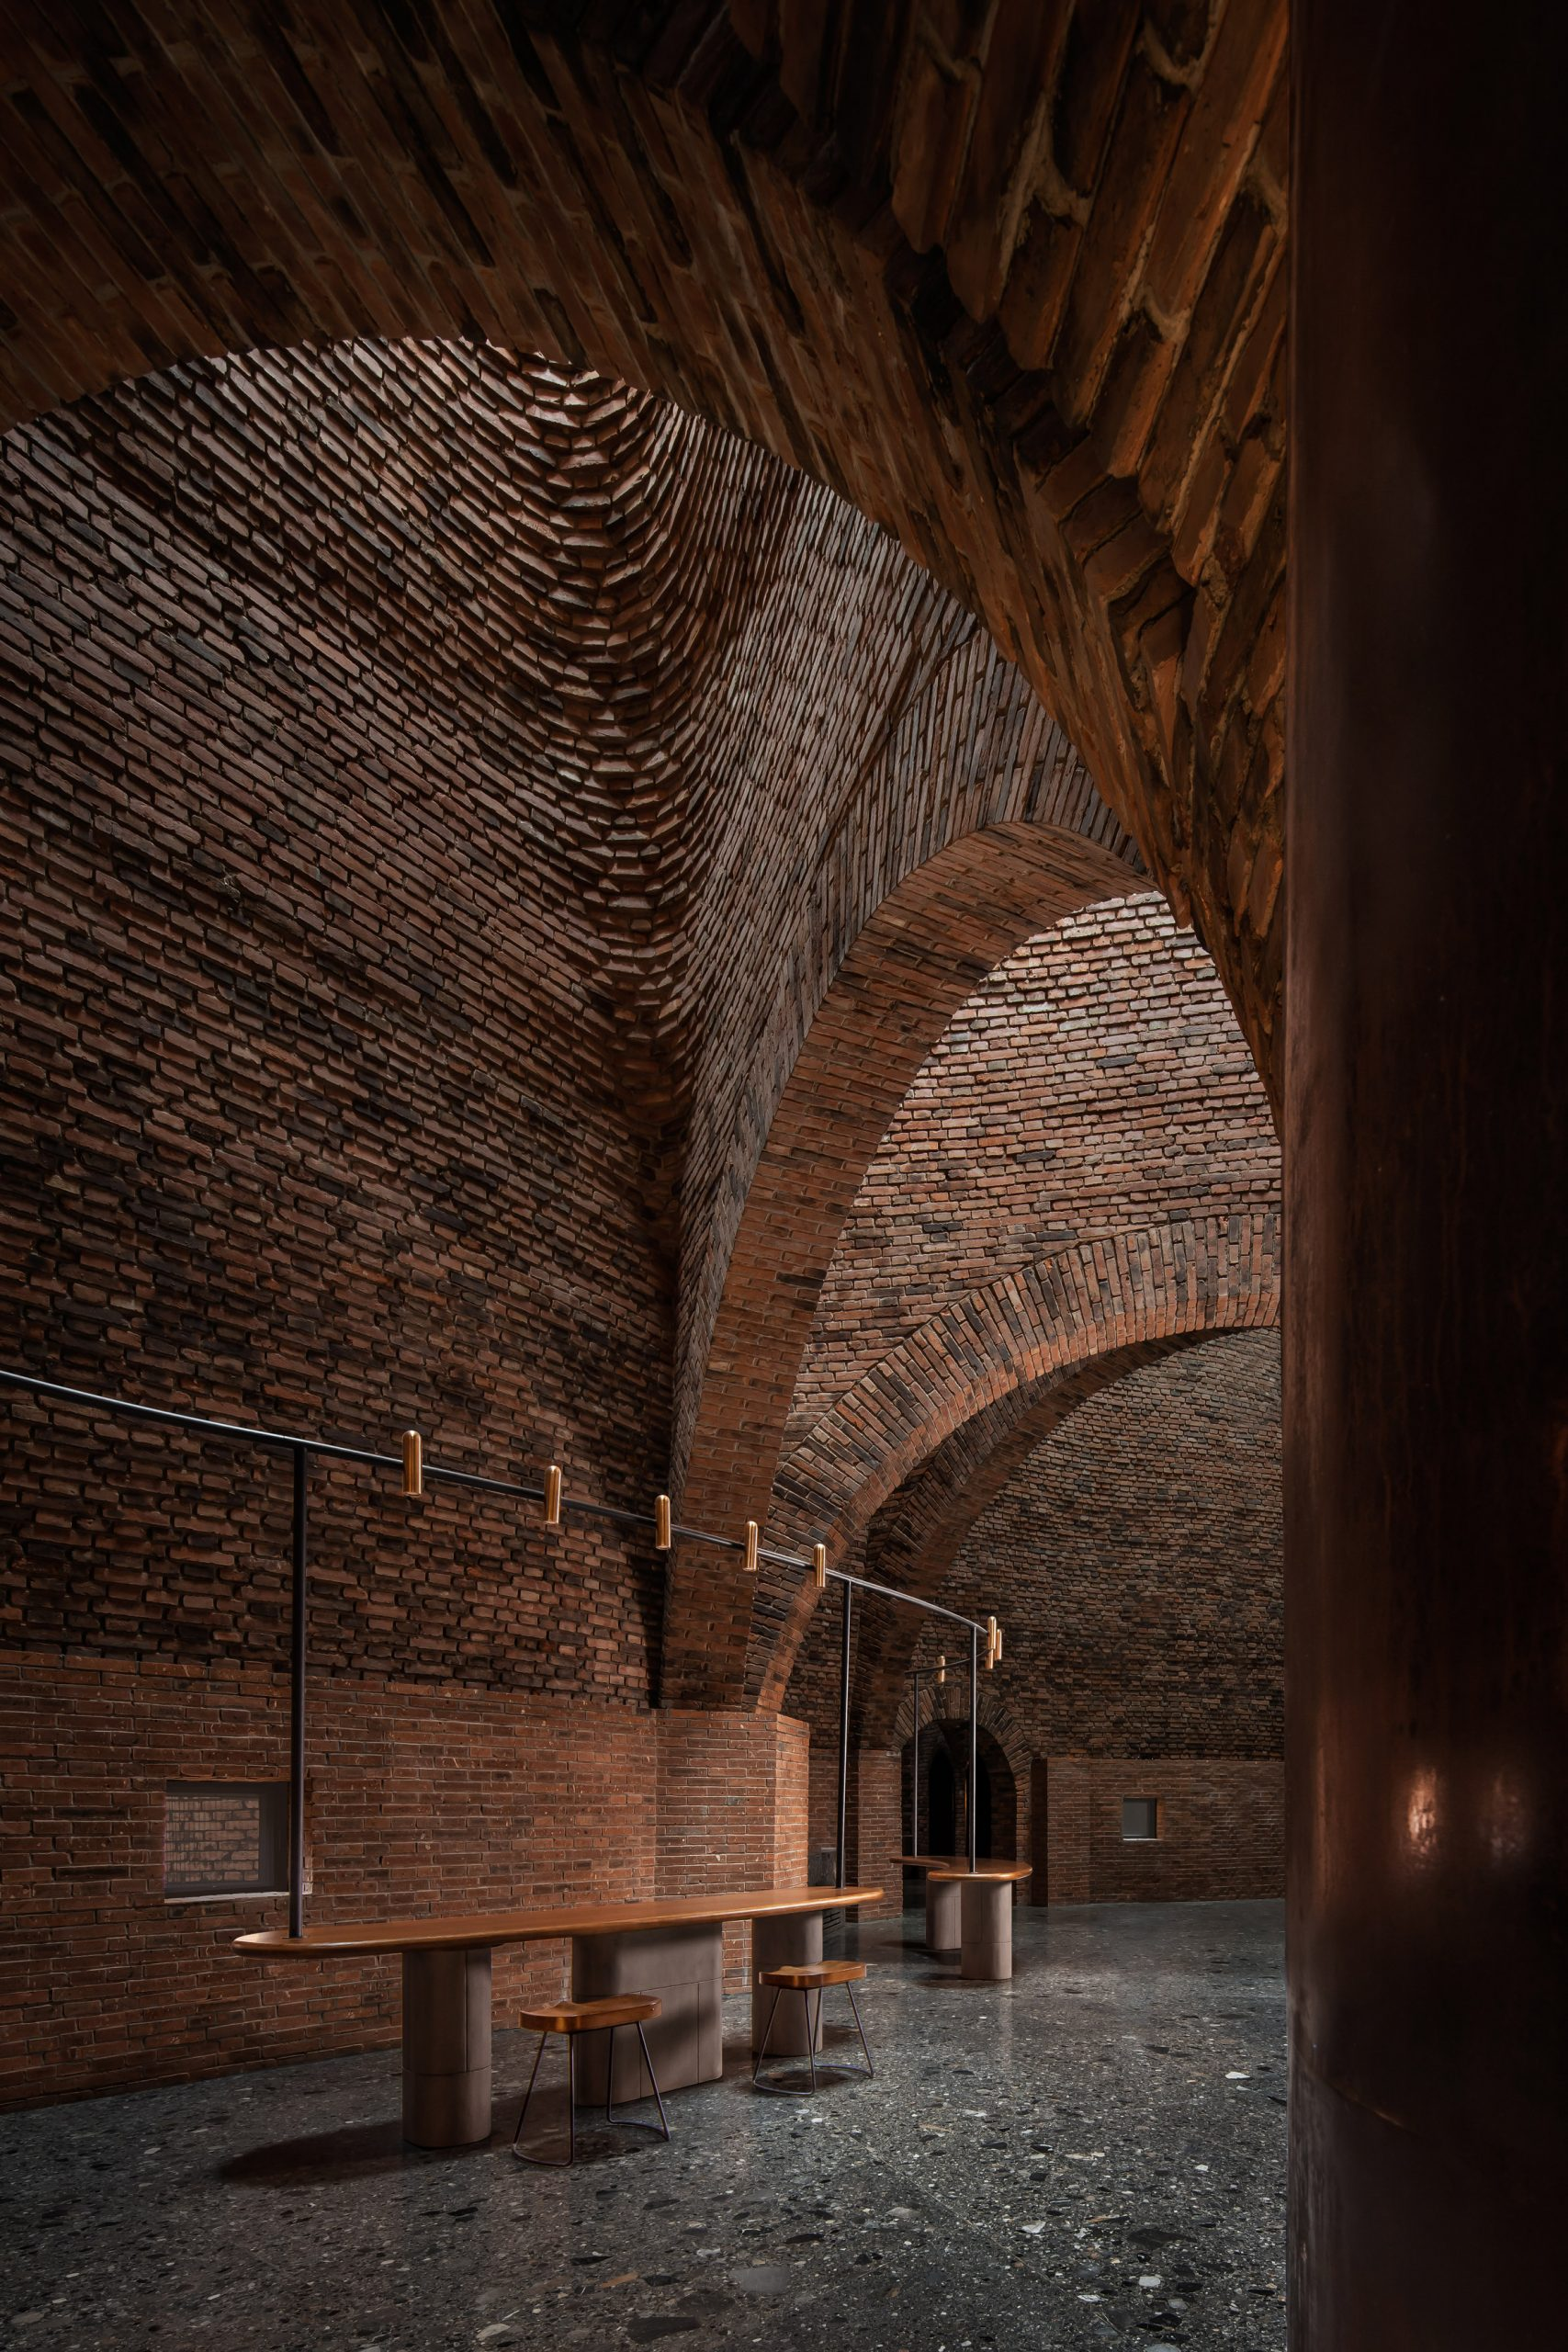 A restaurant with arched red-brick interiors